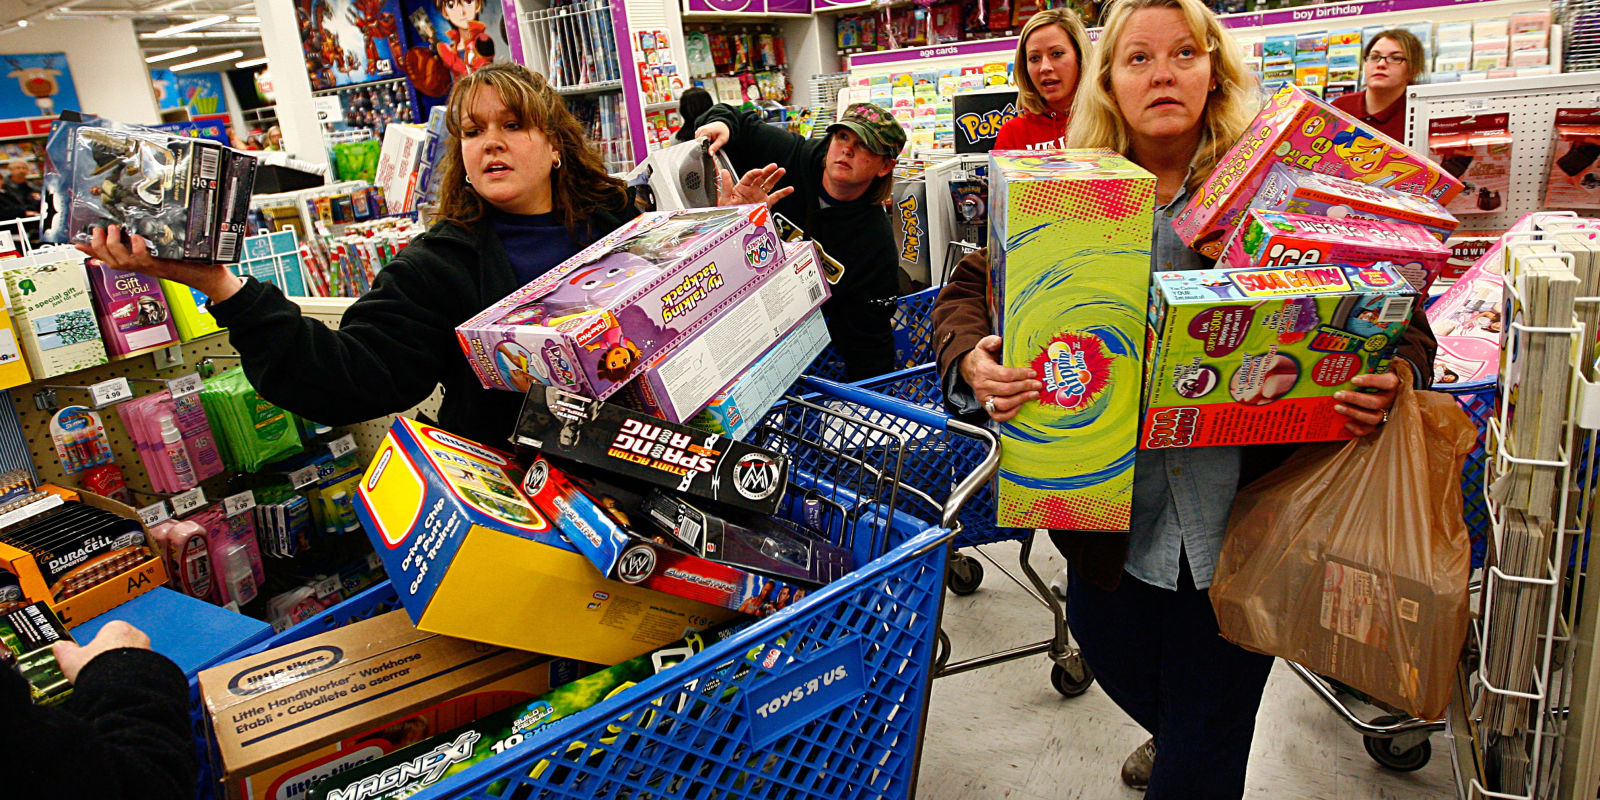 15 Hilarious Black Friday Fails - Black Friday Horror Stories